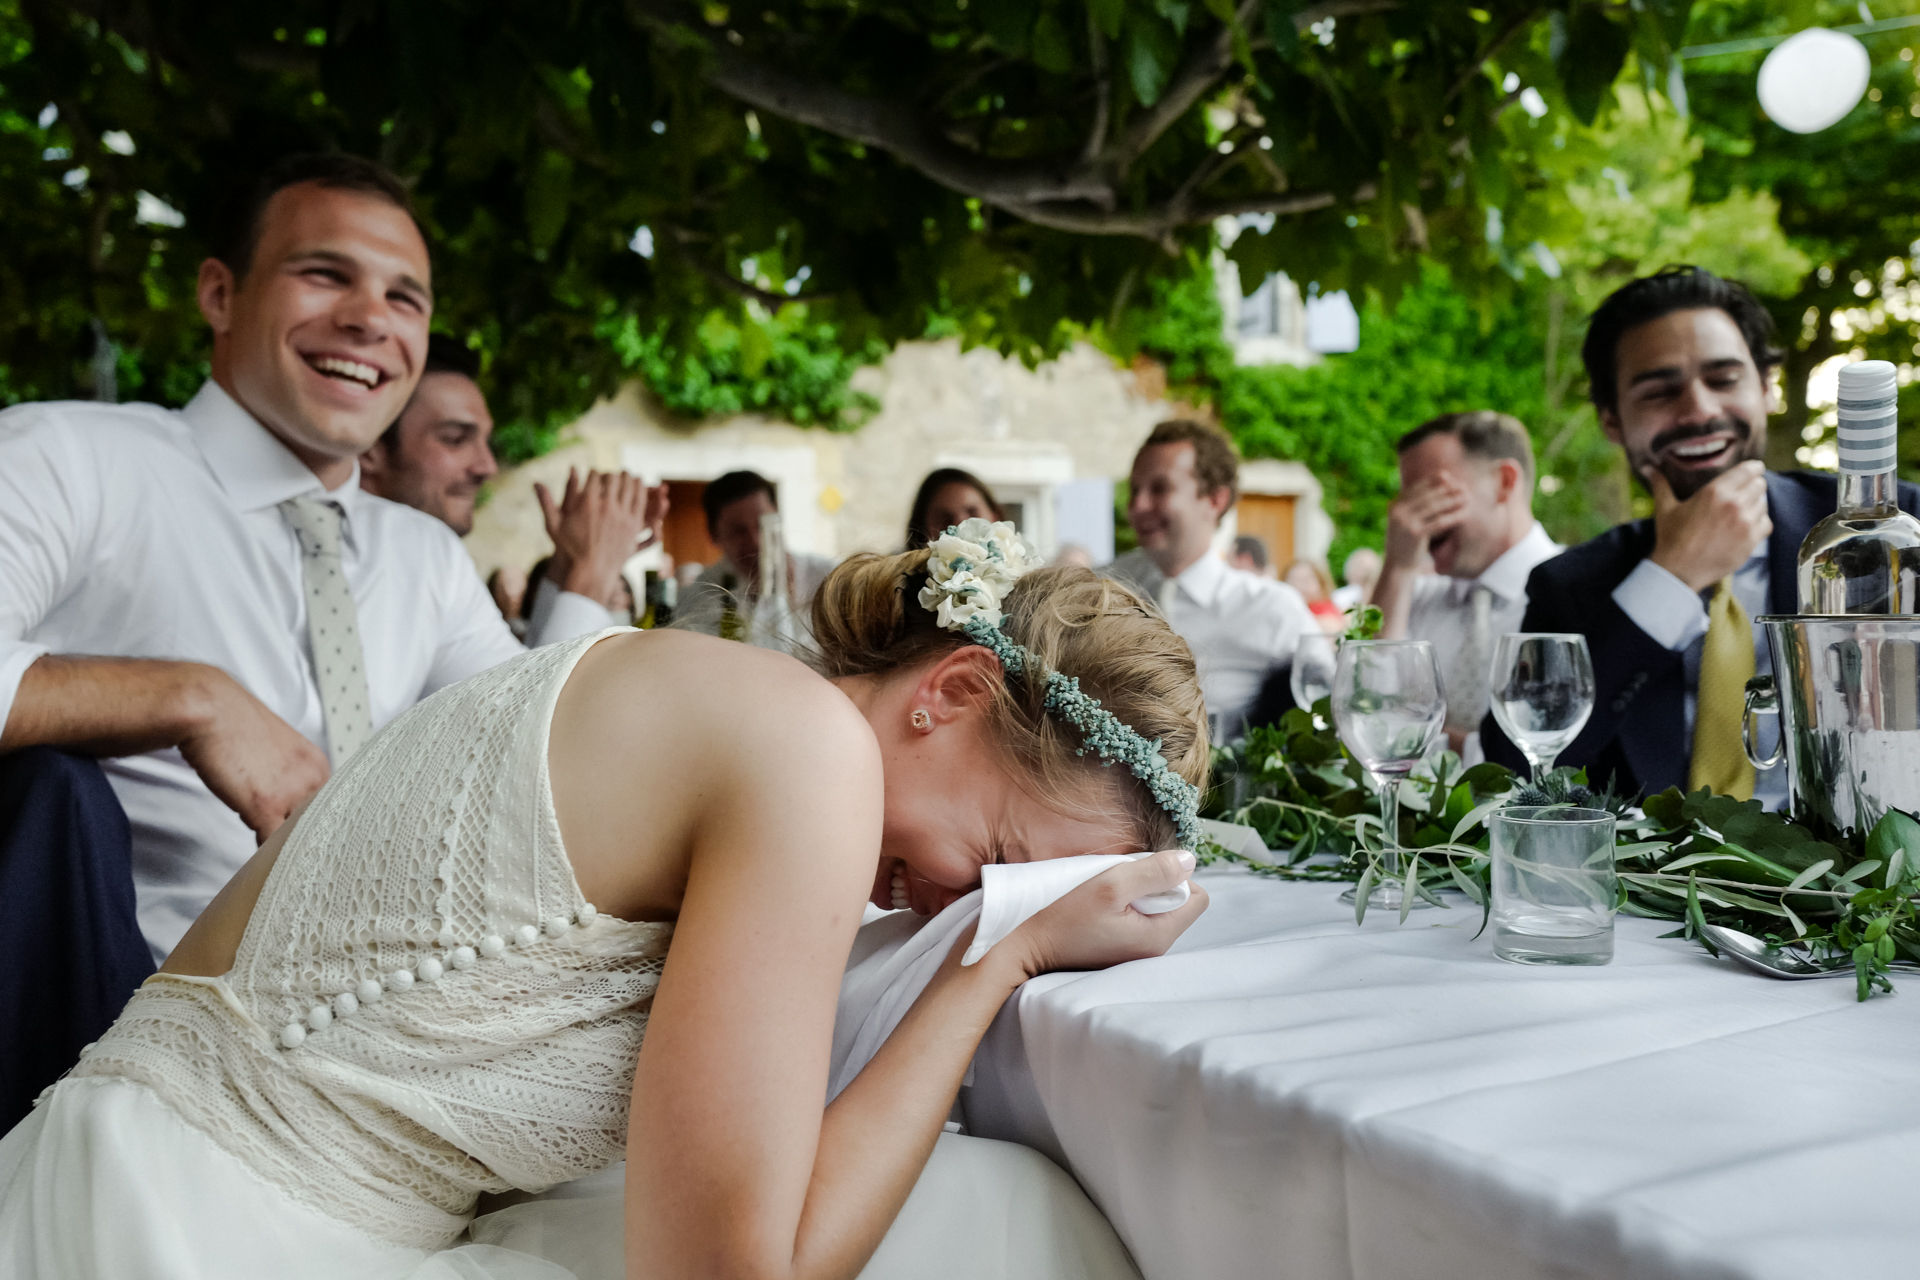 The guests and bride cannot stop laughing during a funny speech at her wedding reception. Photography of reactions on wedding day.